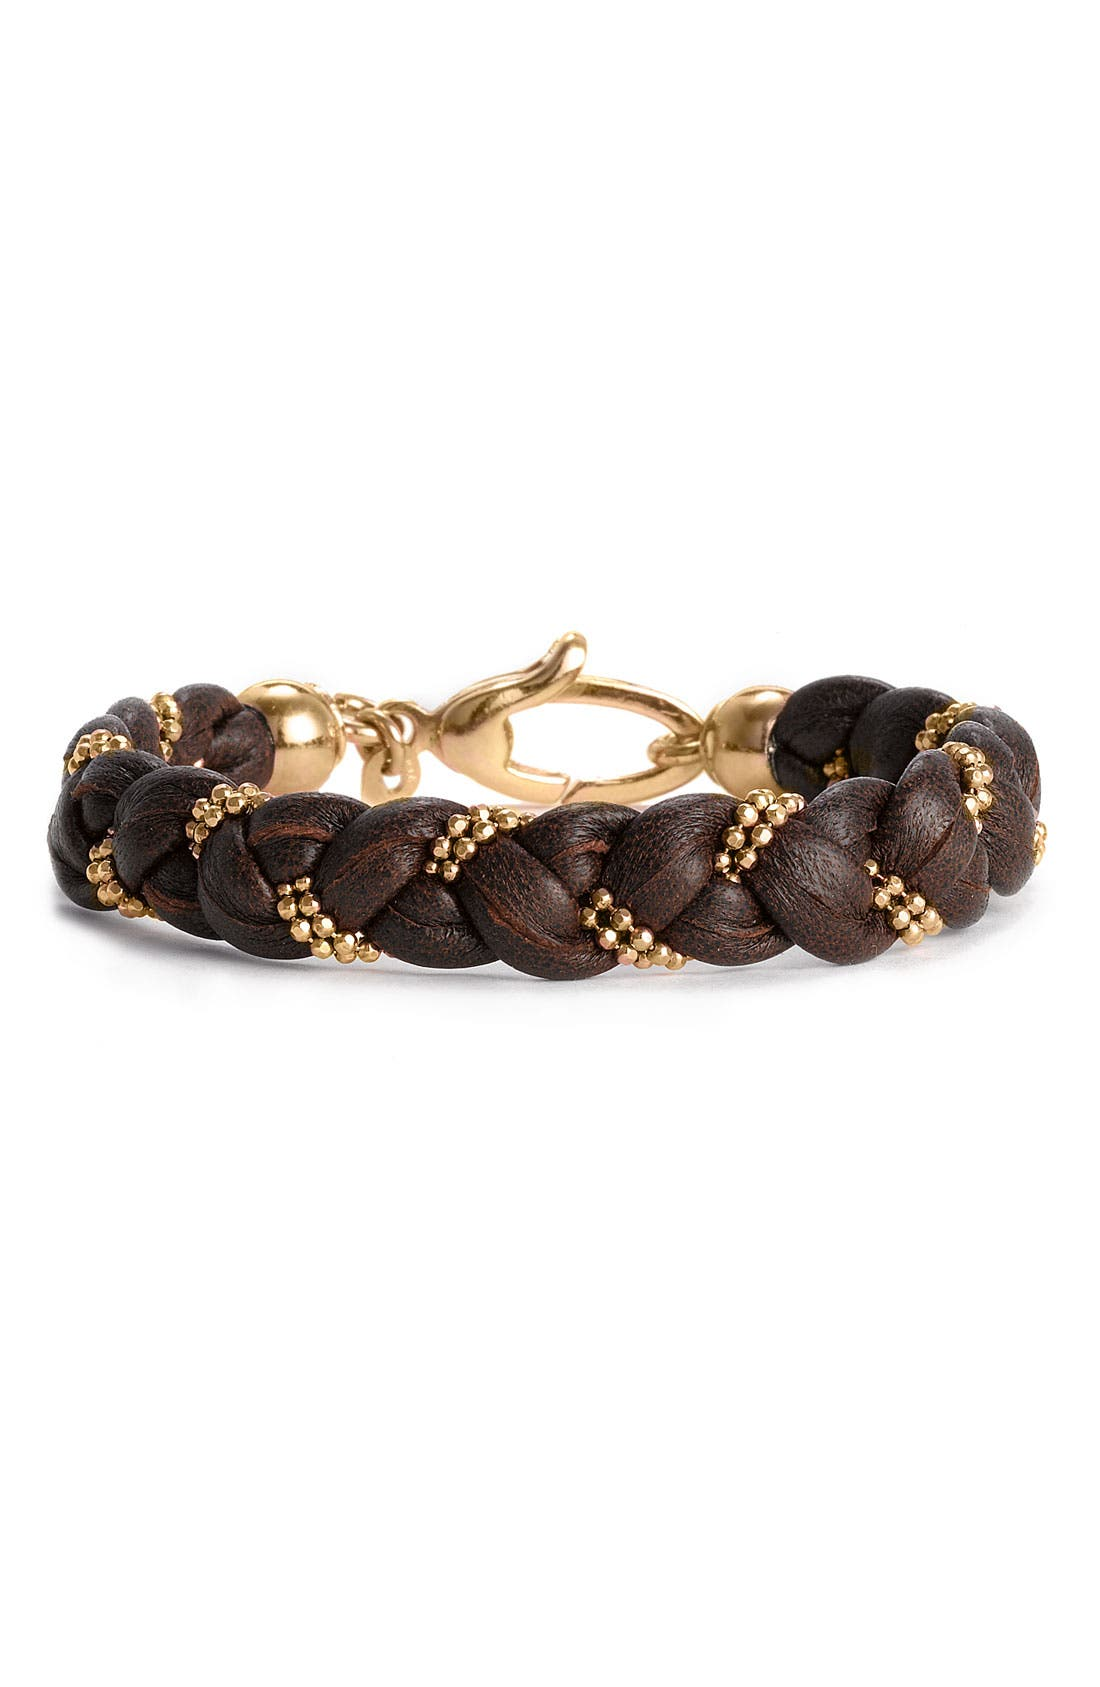 Alternate Image 1 Selected - Argento Vivo Braided Leather Bracelet